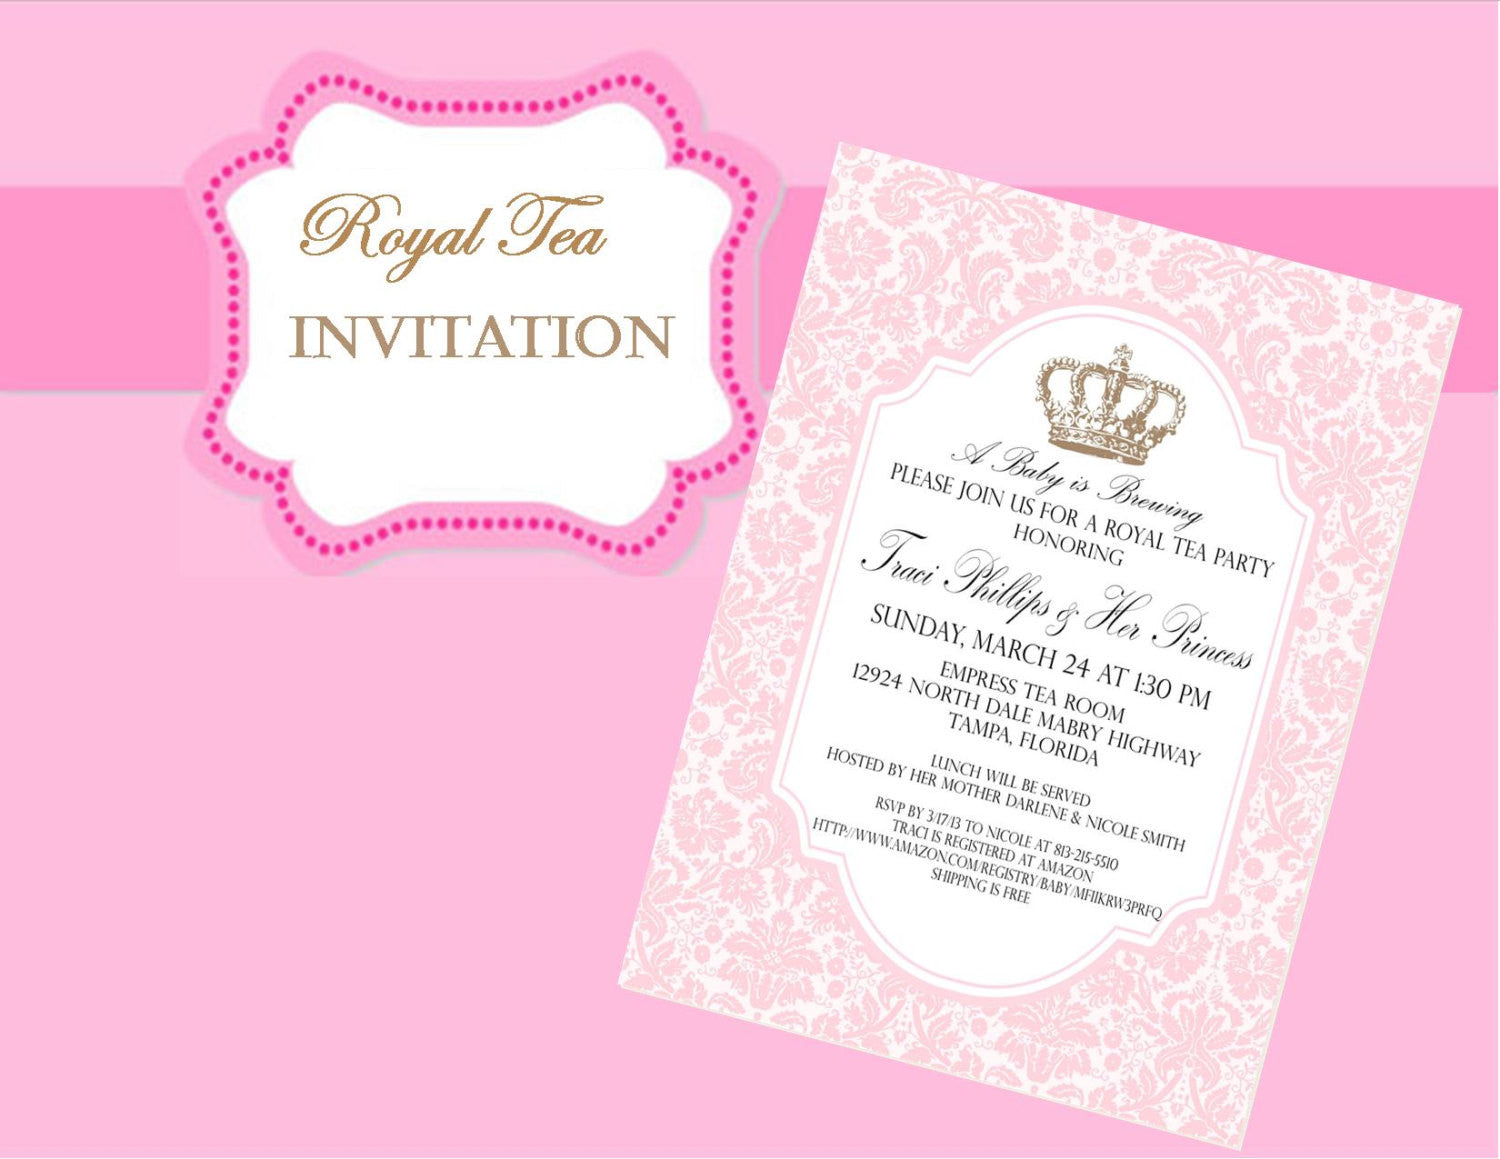 PINK ROYAL Tea INVITATION - Crown Invite - Pink Wedding